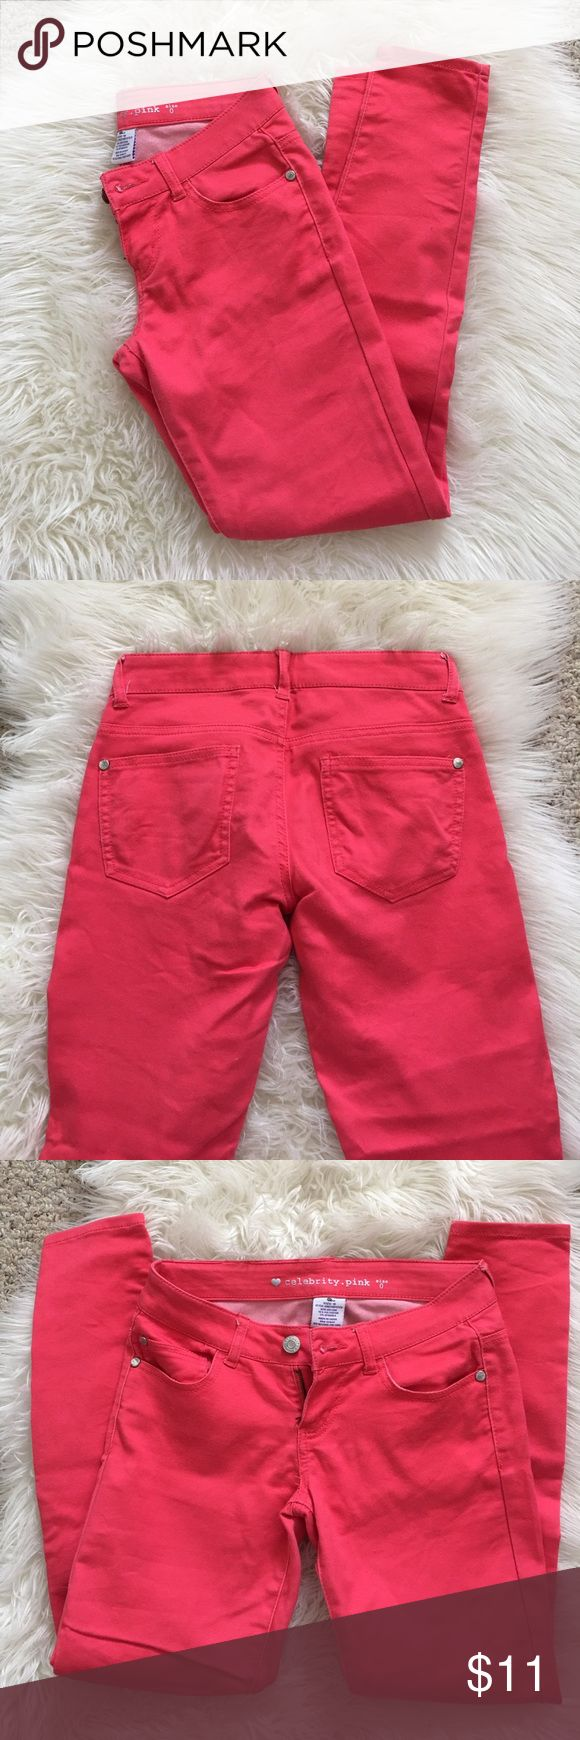 Pink Jeans Cute bright pink jeans! Worn so some wear shows but in great condition overall! Great with flats or boots. Celebrity Pink Jeans Skinny